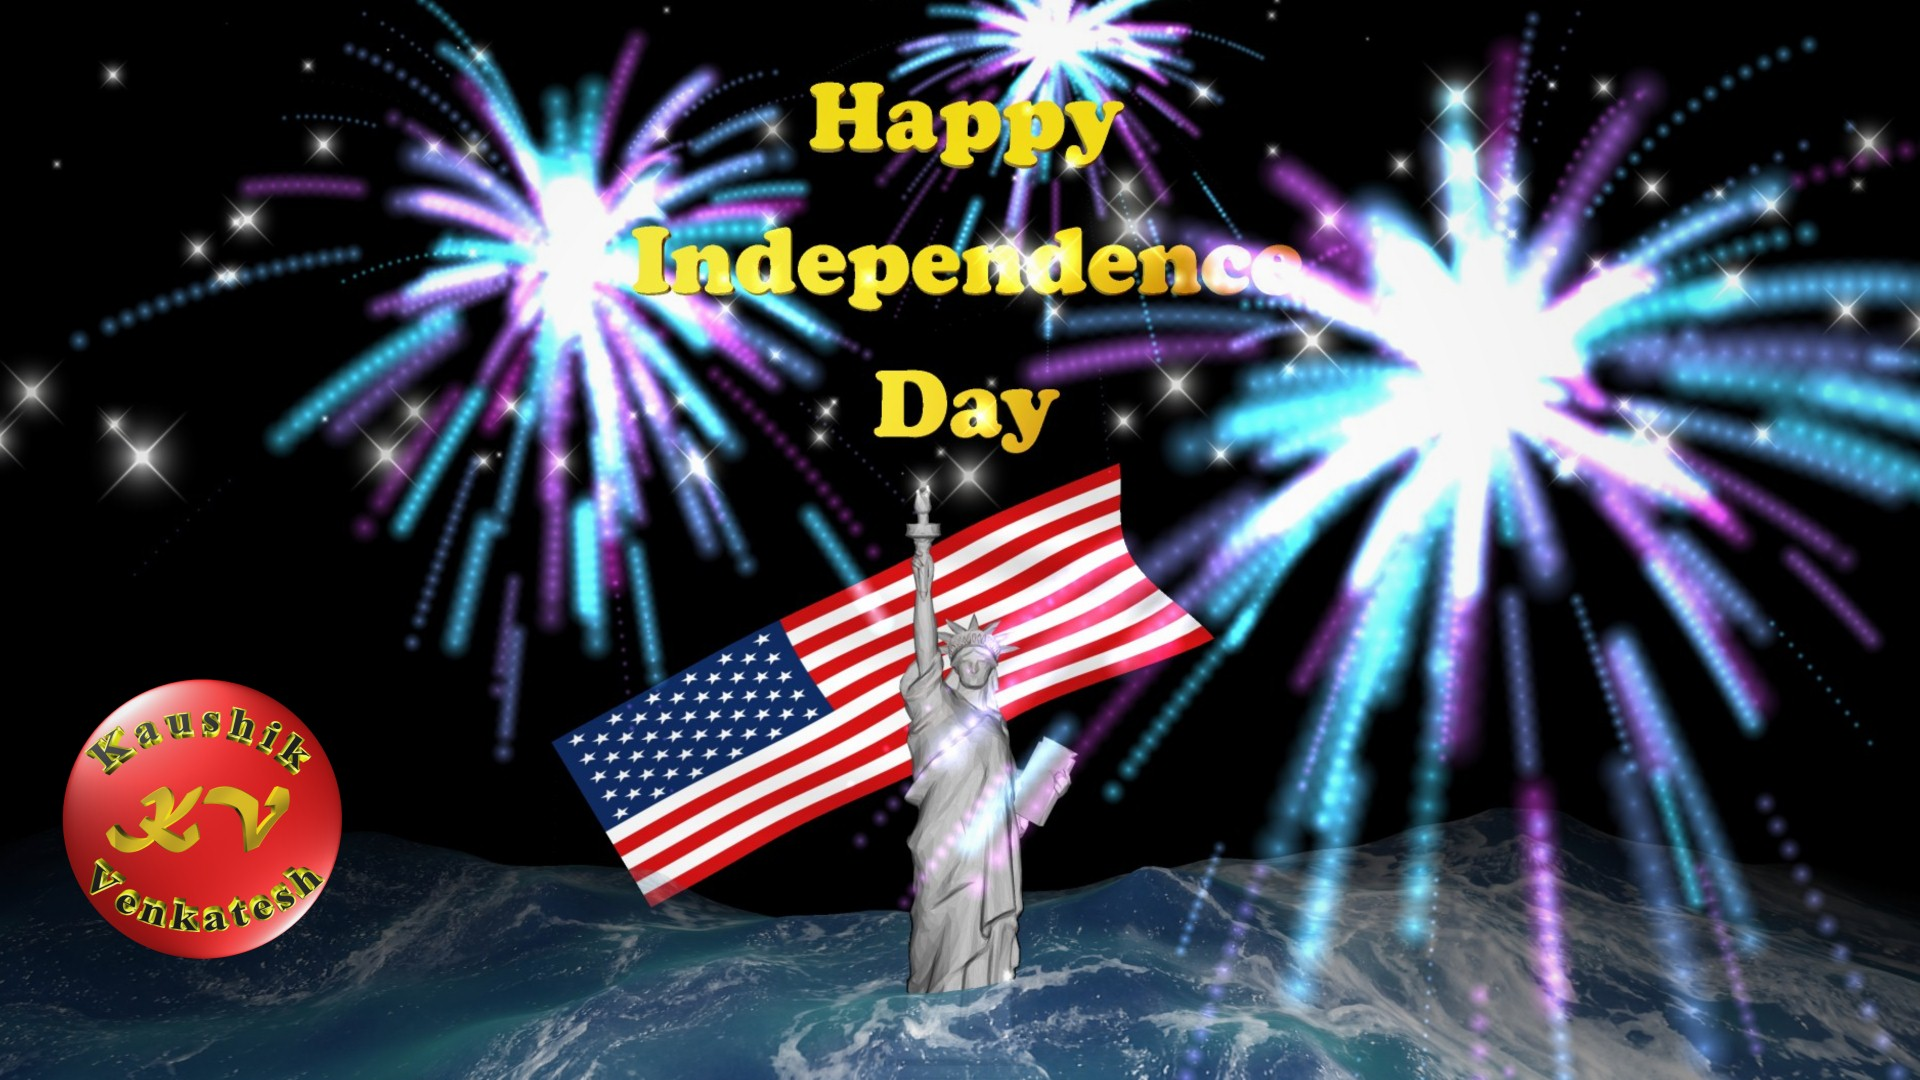 Greetings Image of Happy 4th of July